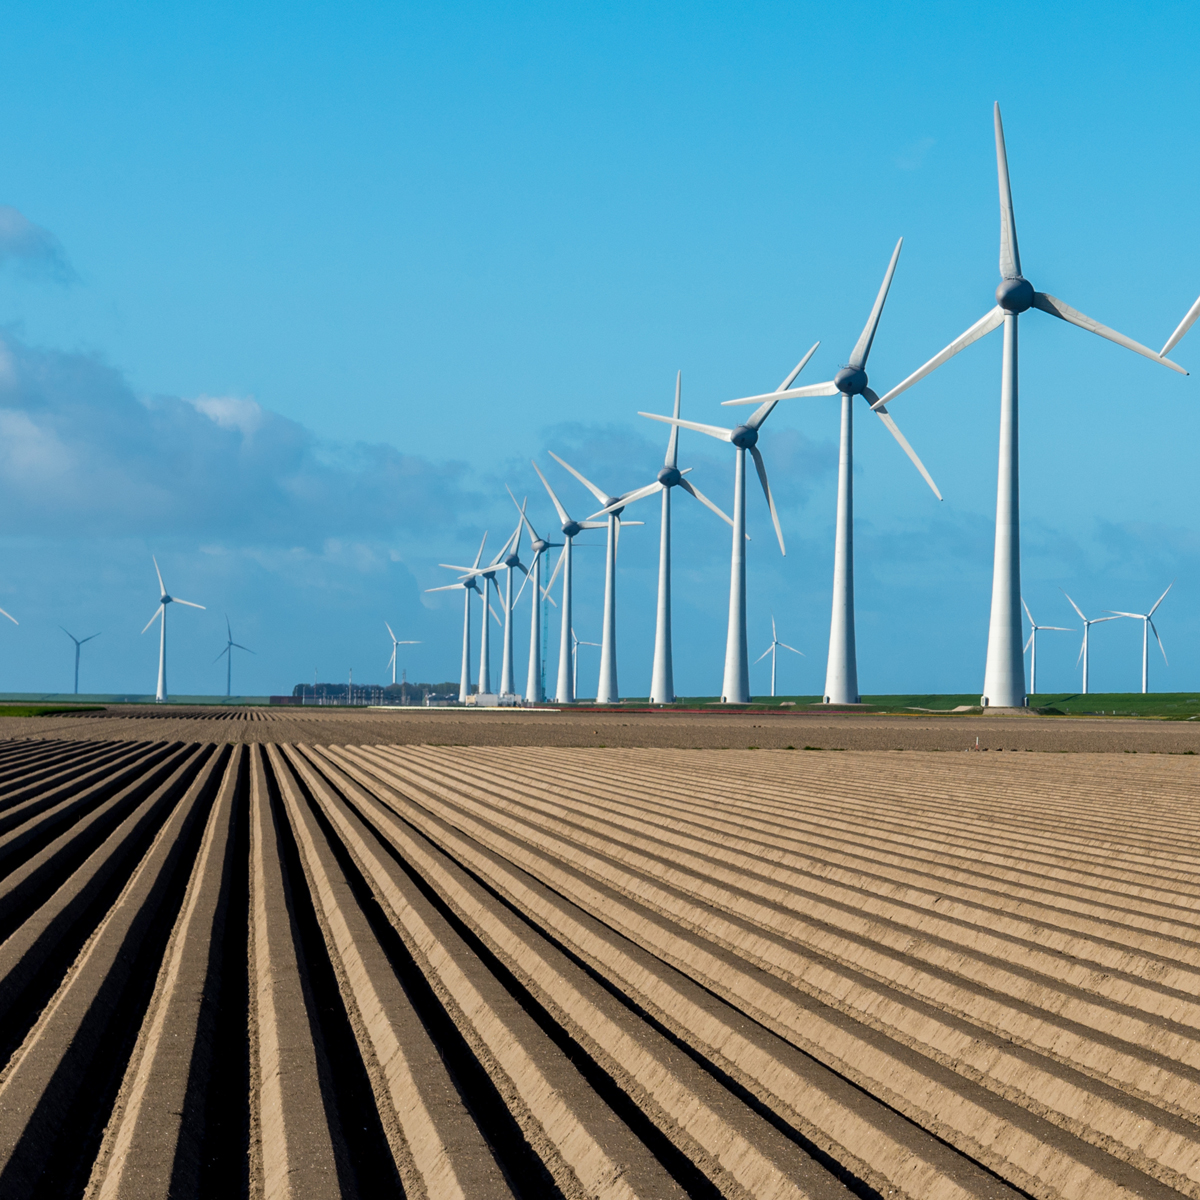 Line of wind turbines next to crop field